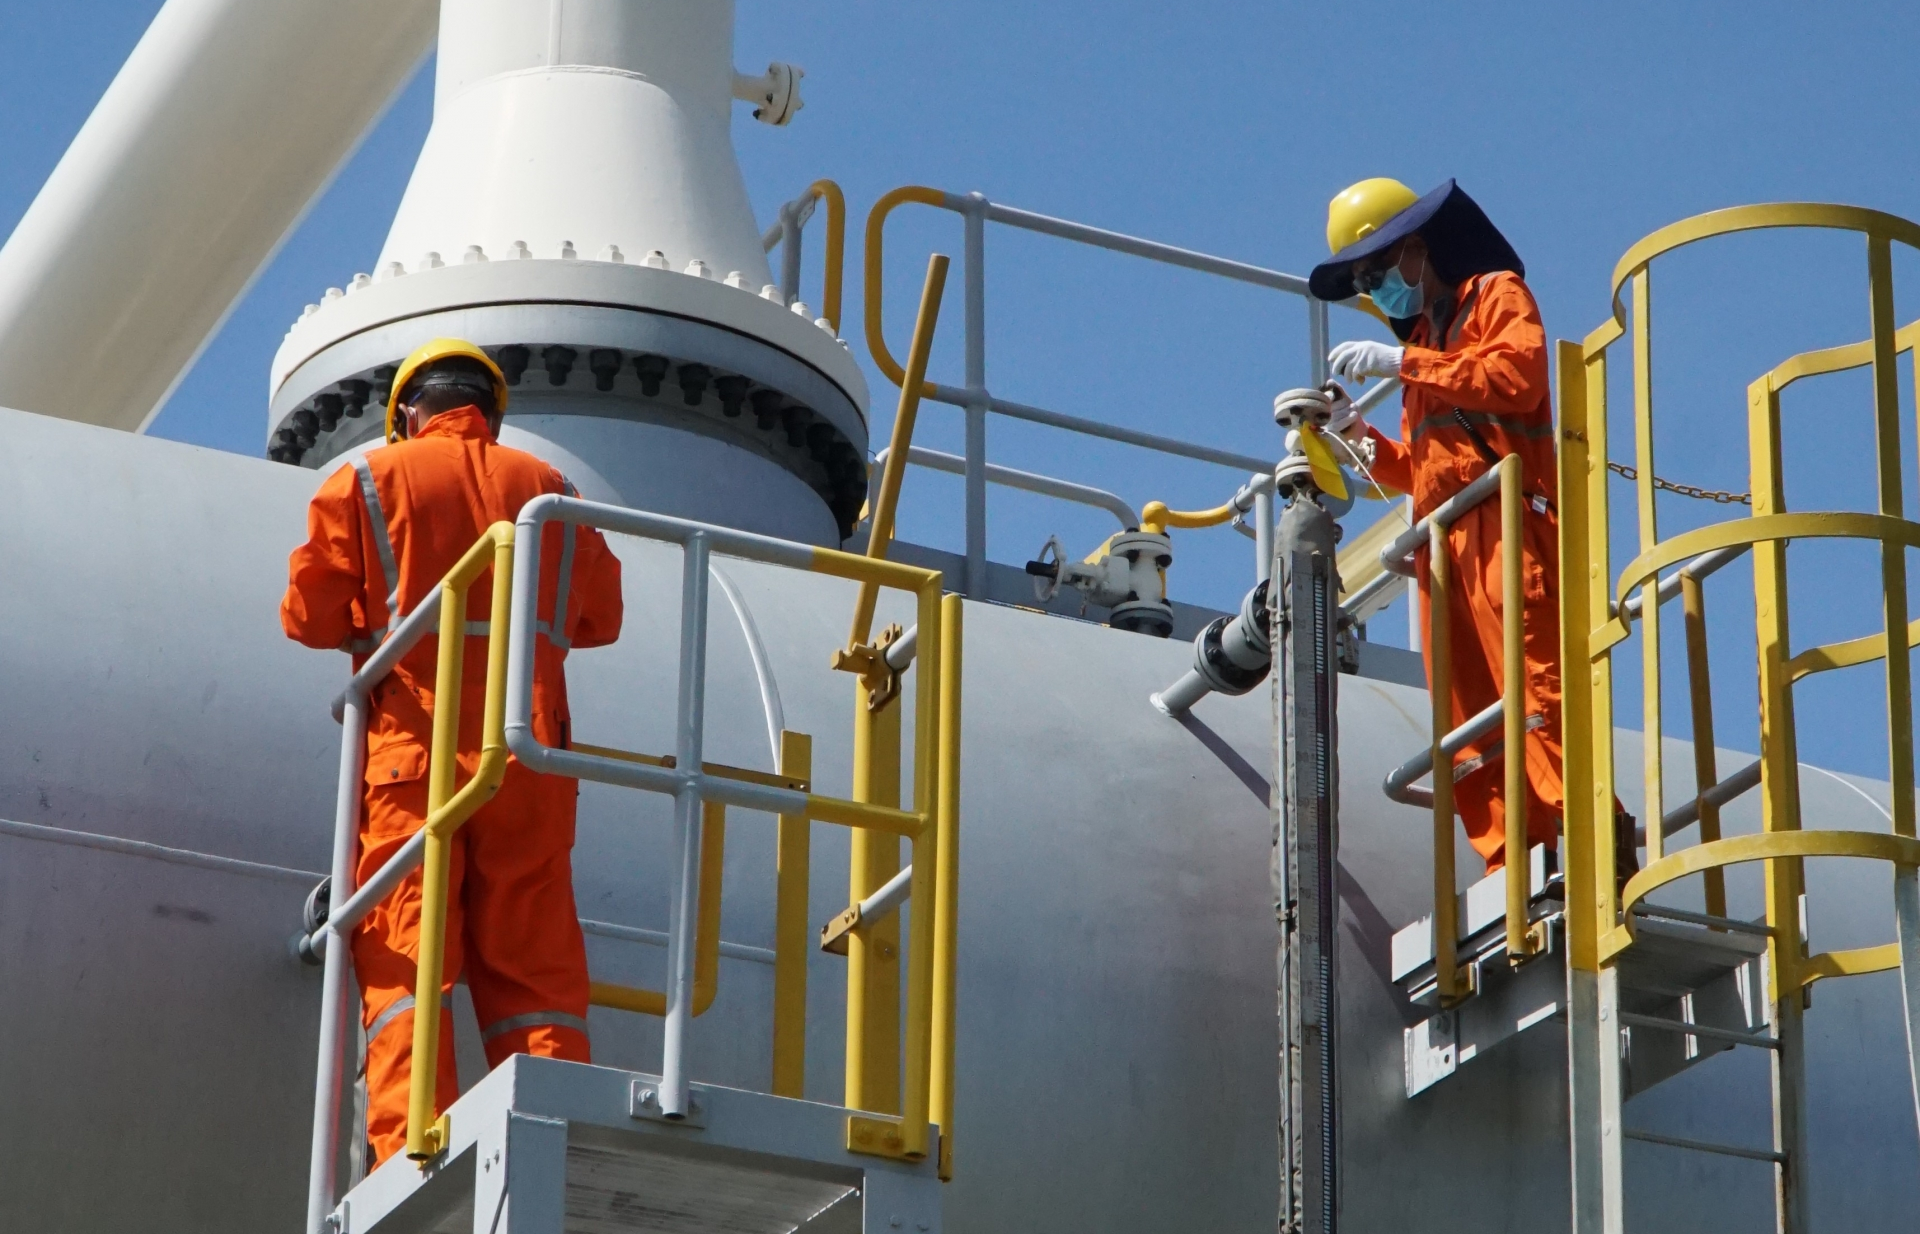 petrovietnam seeks creative ways to overcome pandemic related obstacles